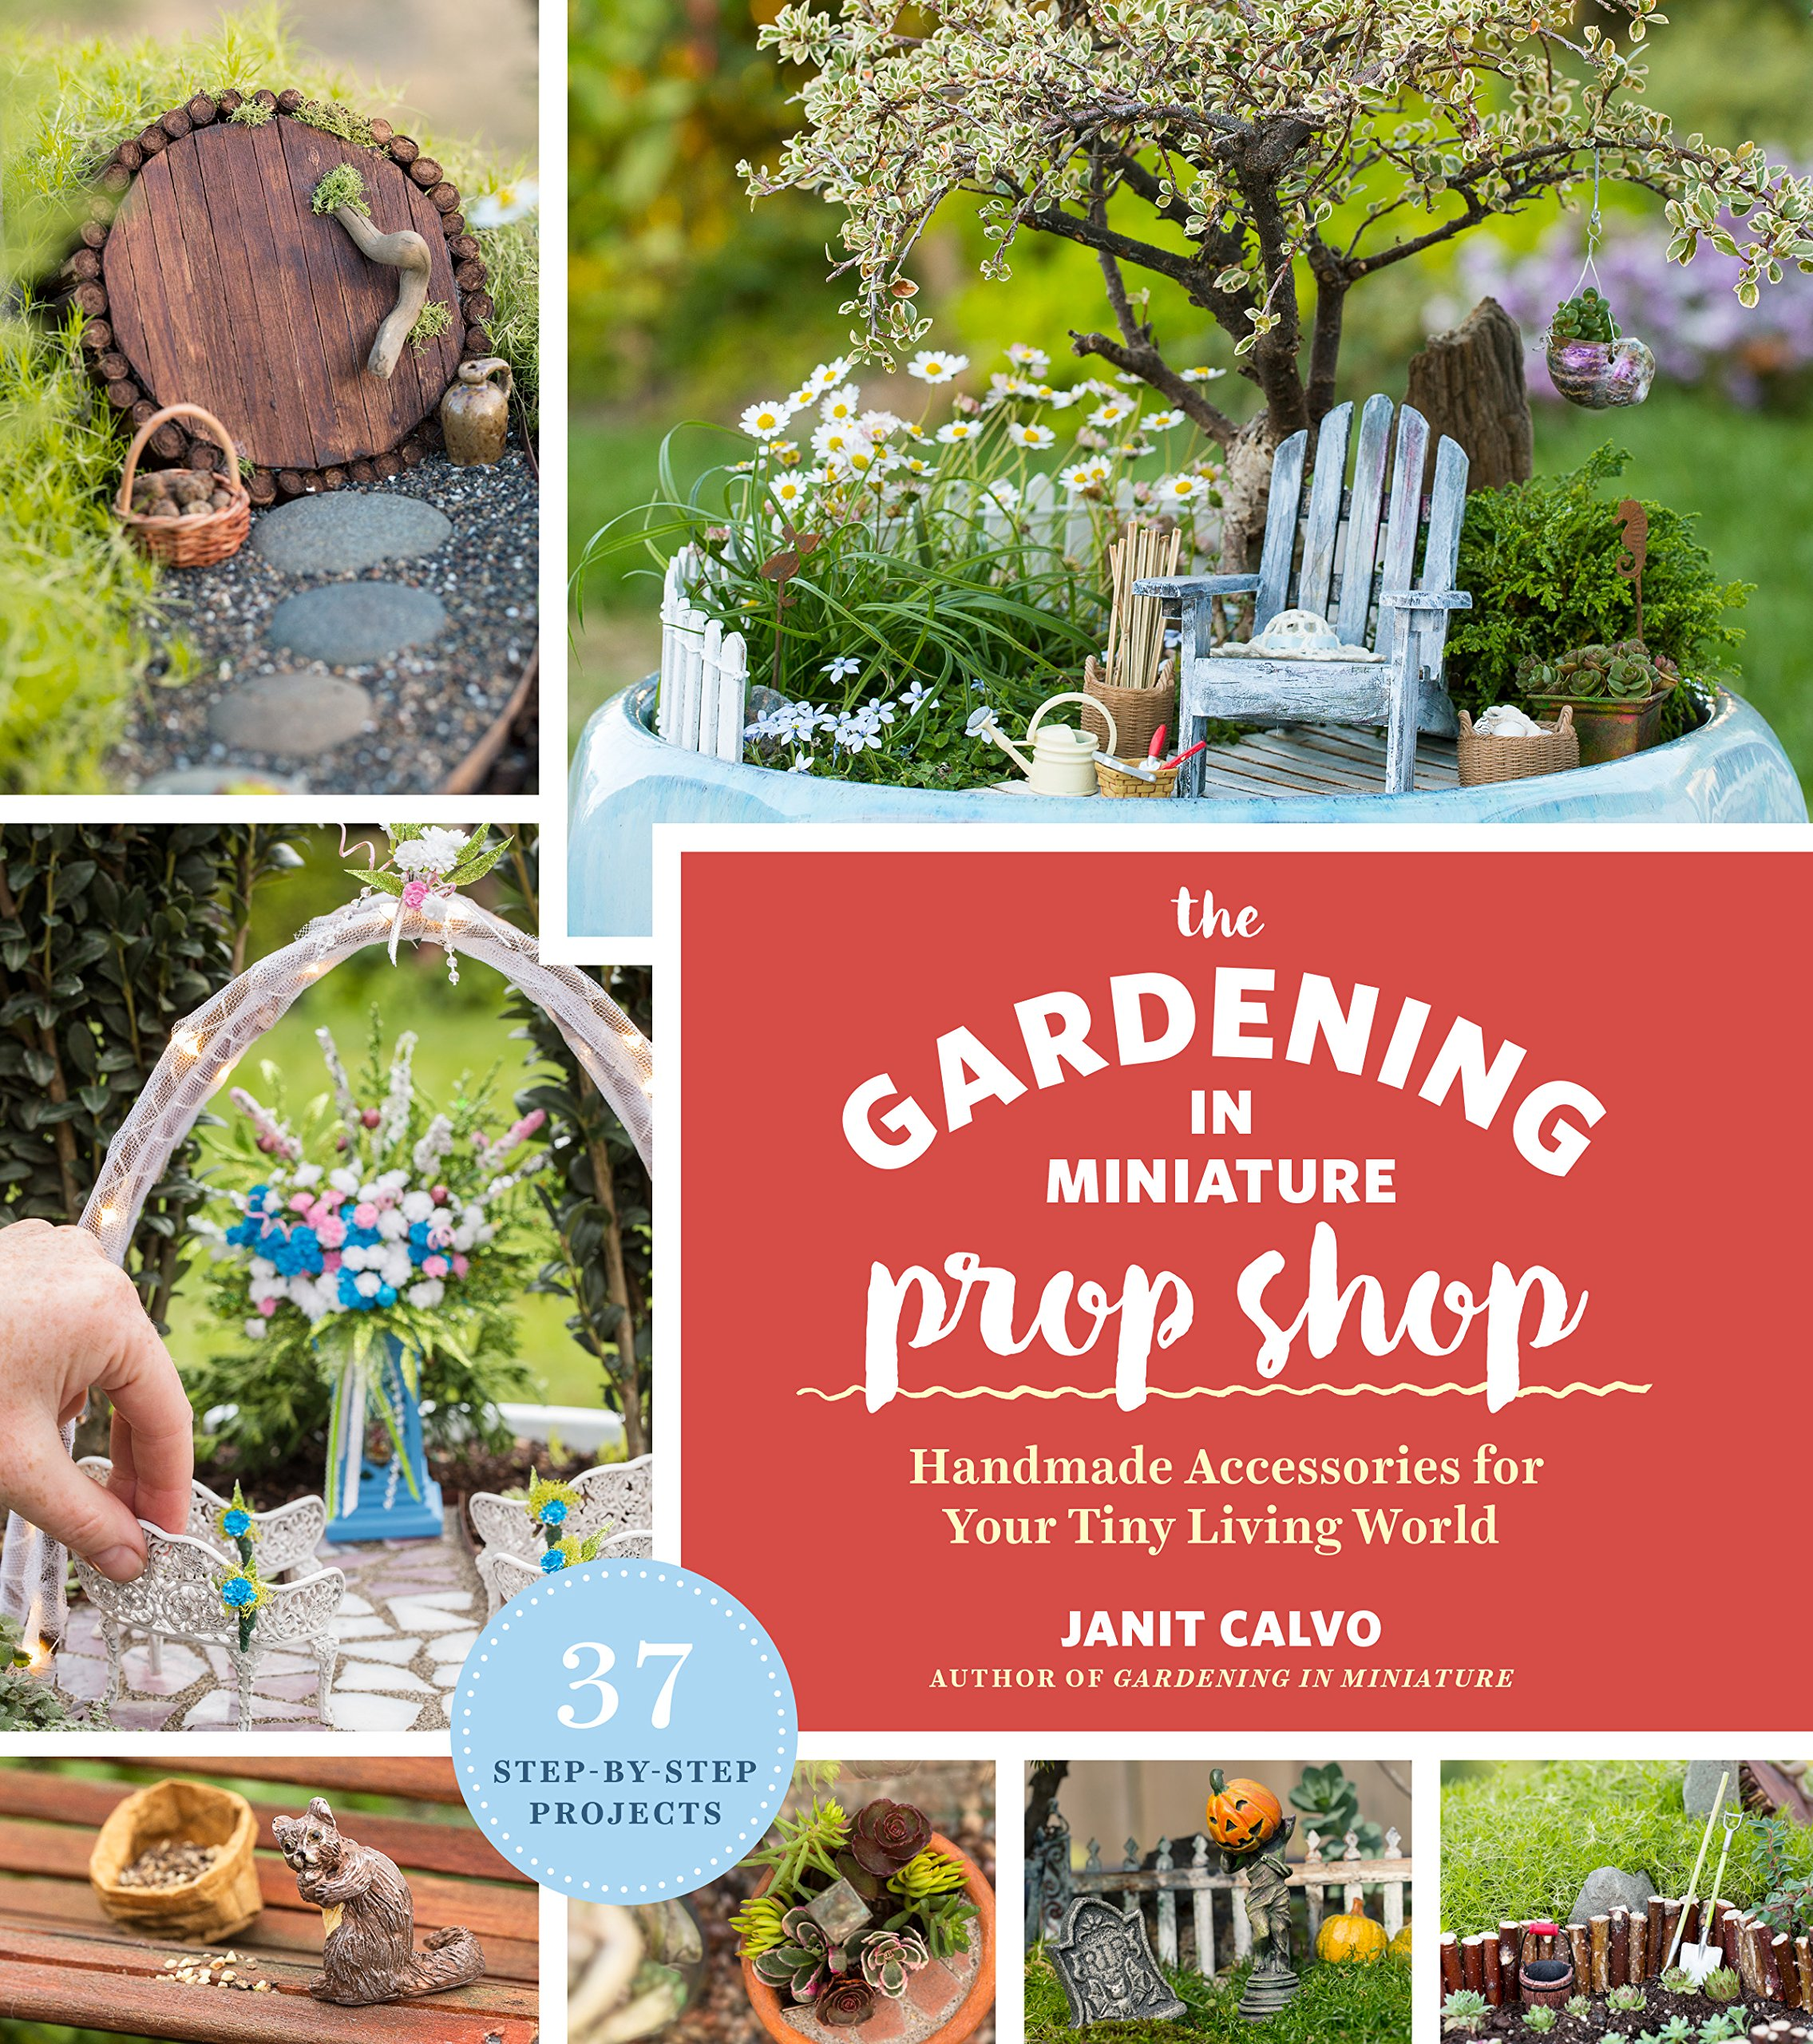 Gardening In Miniature Prop Shop  Handmade Accessories For Your Tiny Living World